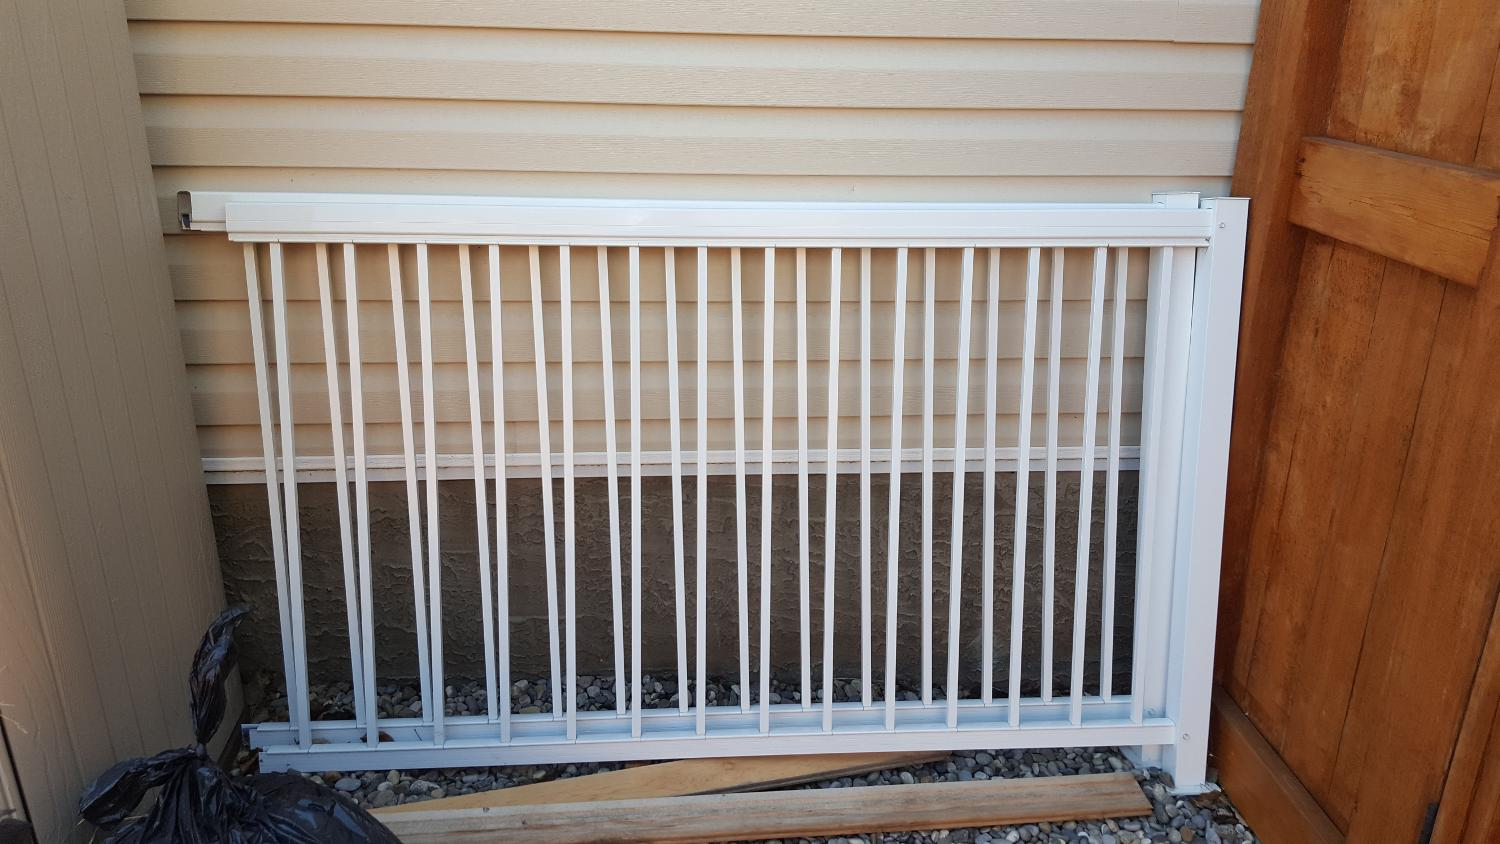 Find More Aluminum Deck Railing 2 Panels For Sale At Up To 90 Off Calgary AB